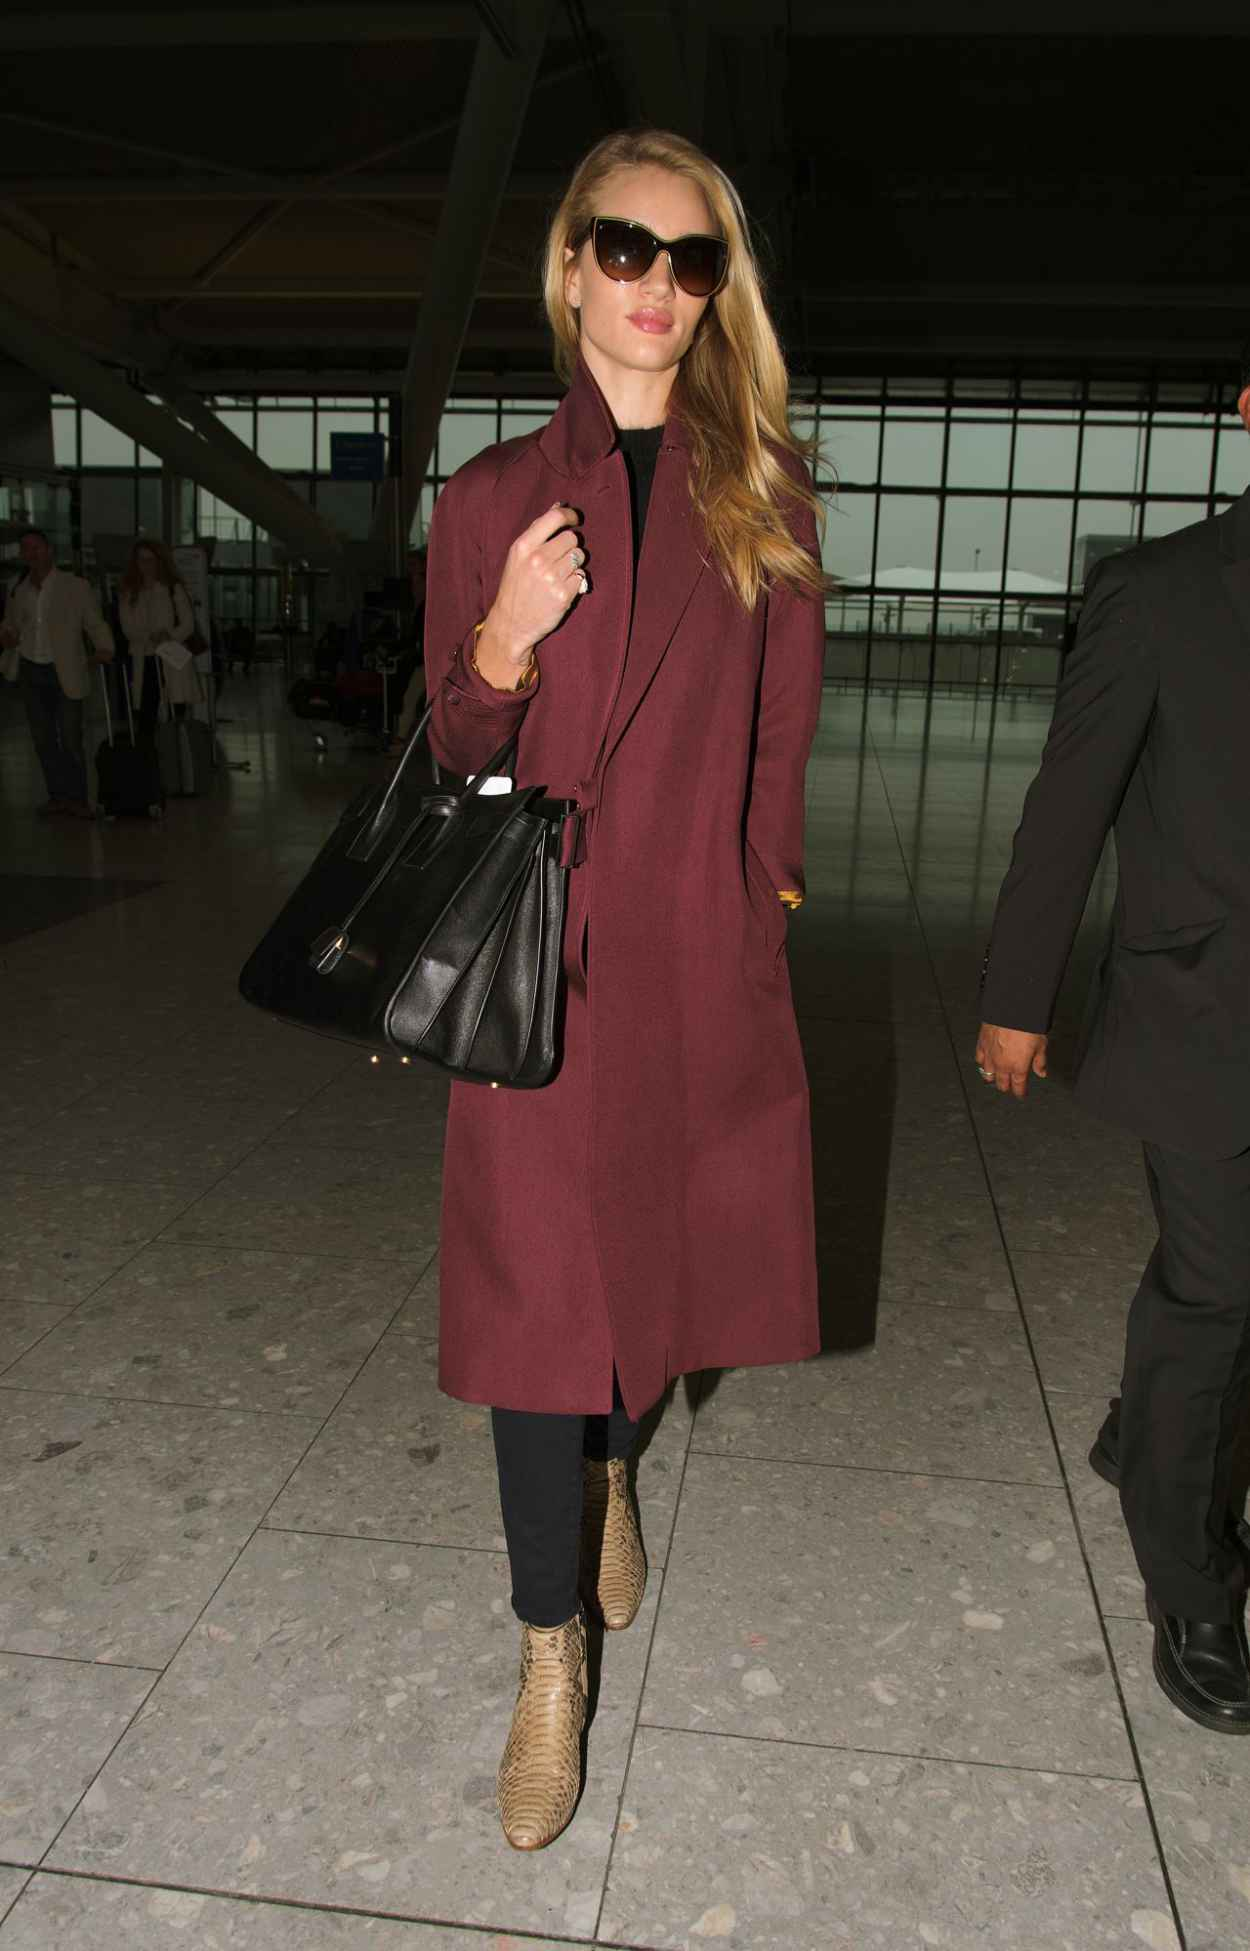 Rosie Huntington-Whiteley at Heathrow Airport in London - May 2015-2